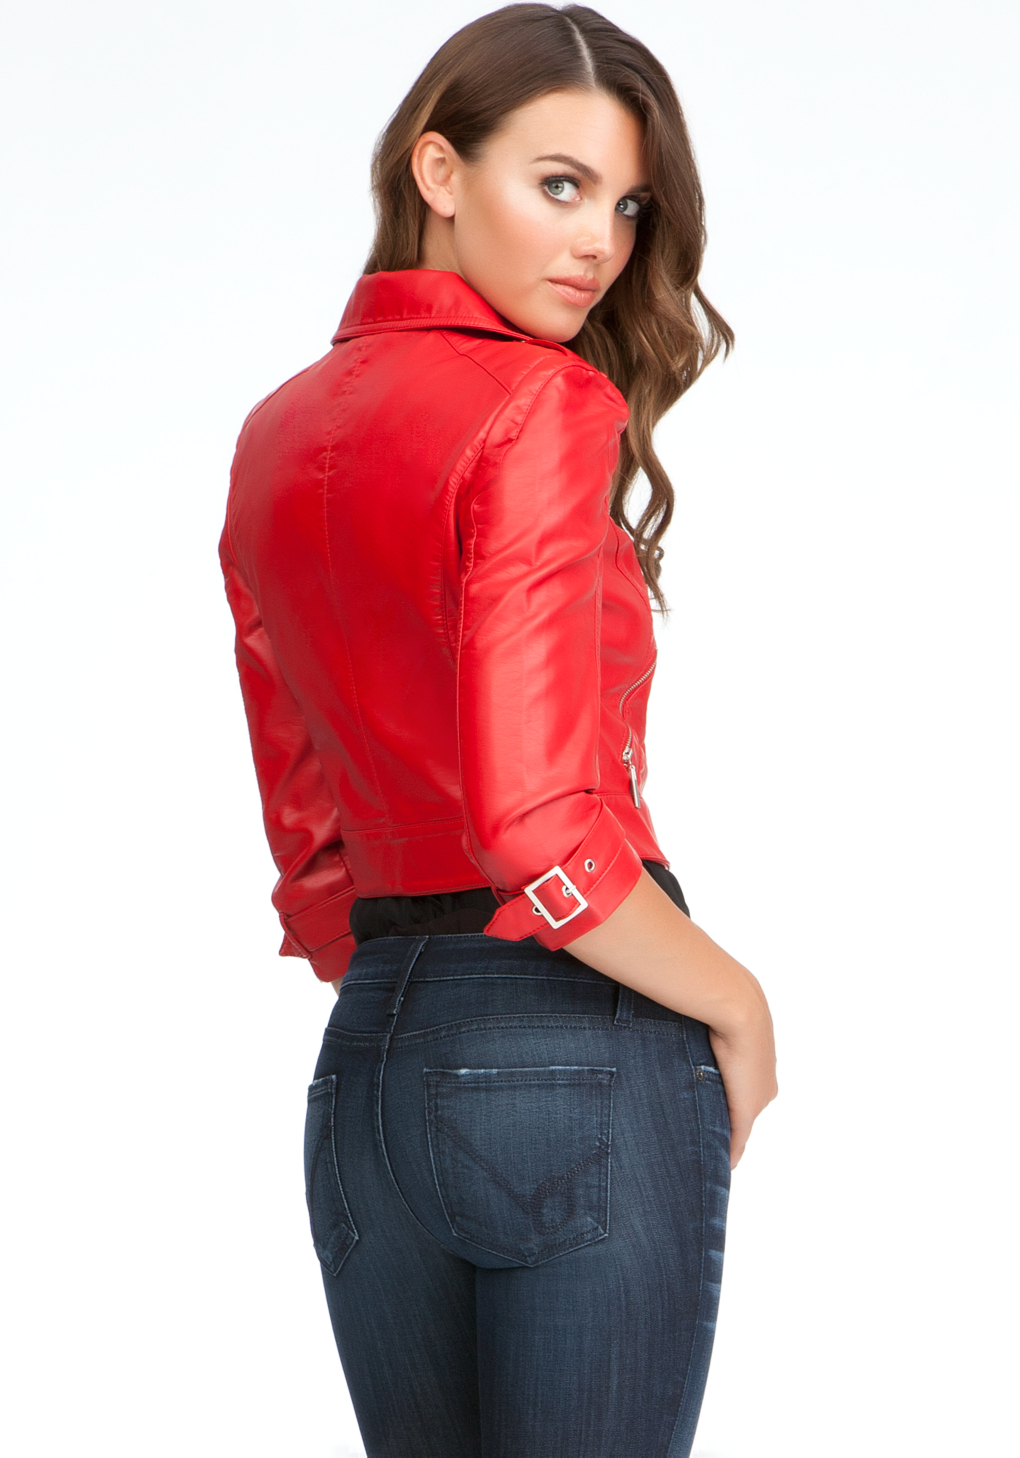 Bebe faux leather moto jacket in red lyst for Red leather shirt for womens